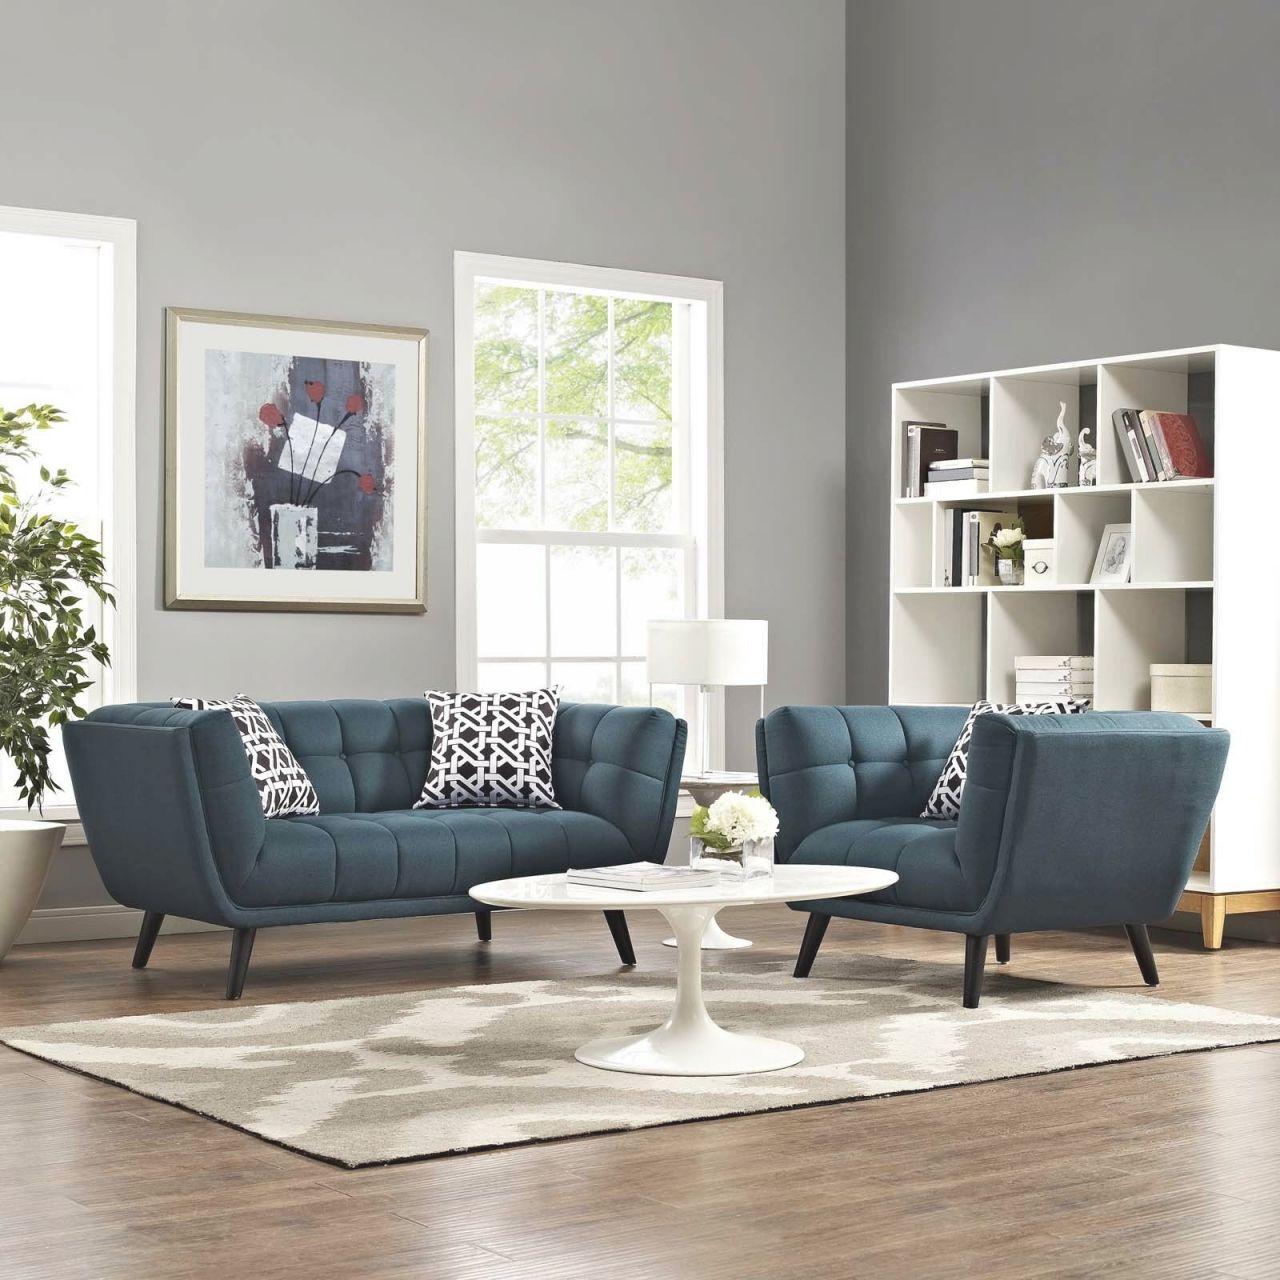 Details About 2Pc Living Room Furniture Set Tufted Upholstered Loveseat & Armchair In Blue with regard to Unique Tufted Living Room Furniture